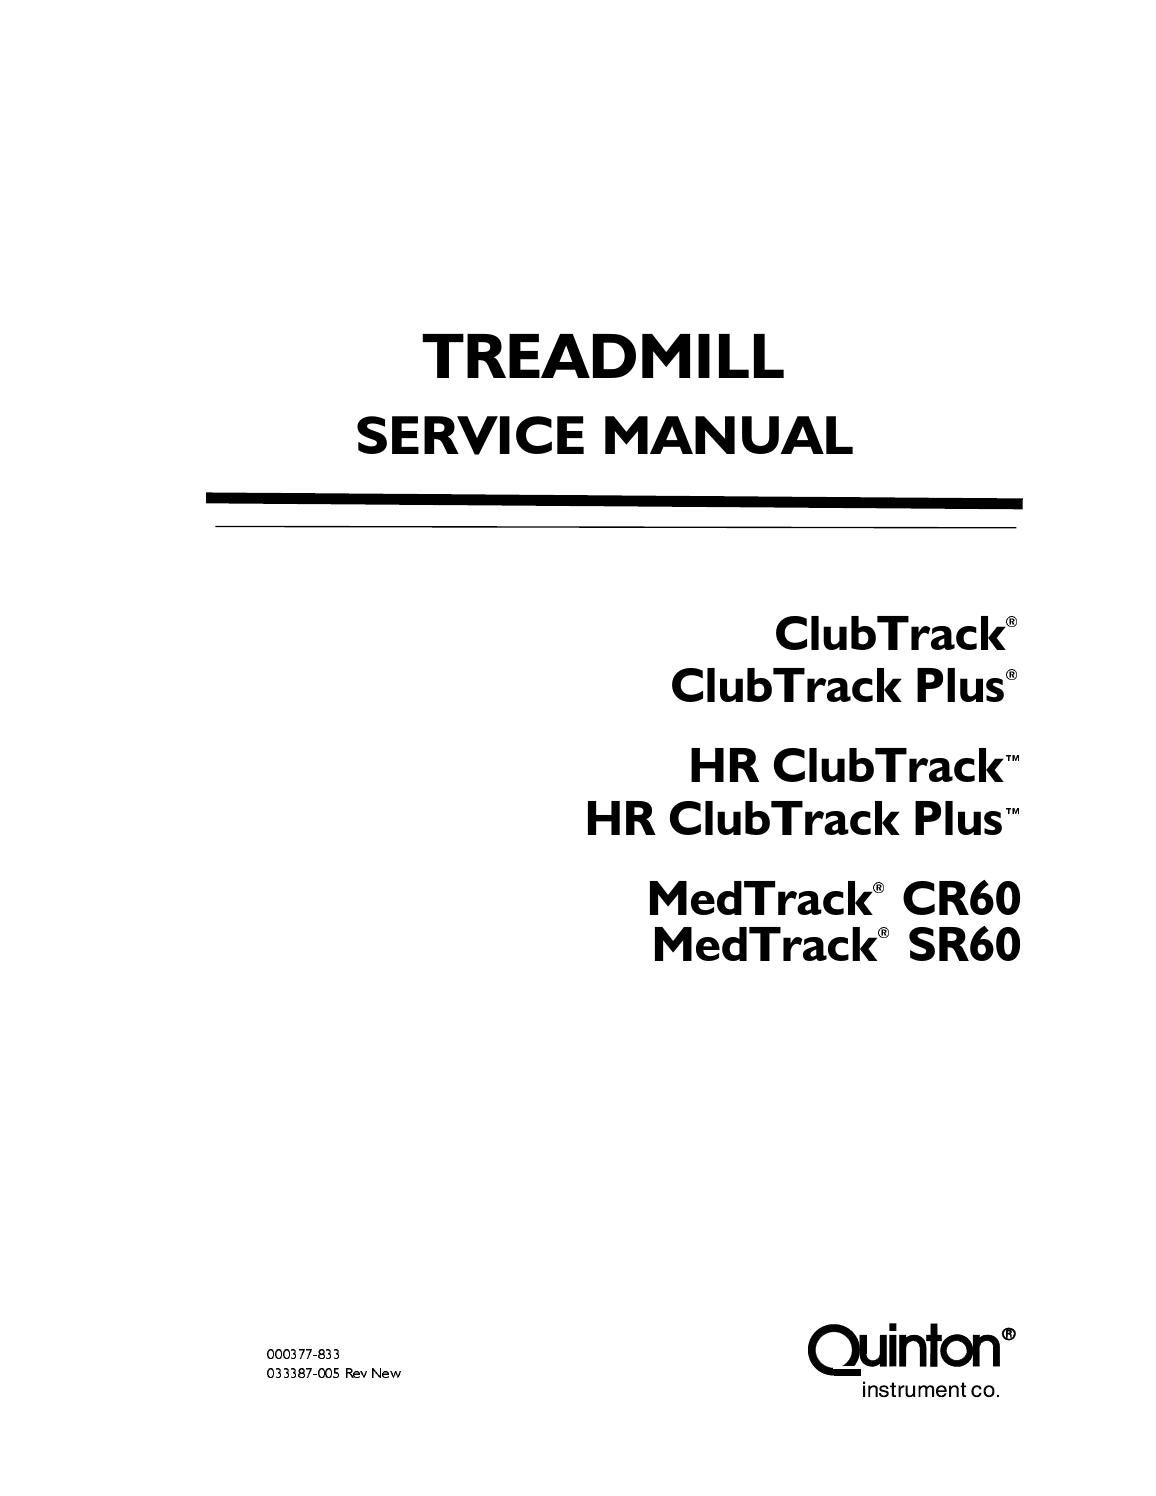 Product support quinton manuals hyperdrive service manual by jesus ruiz -  issuu